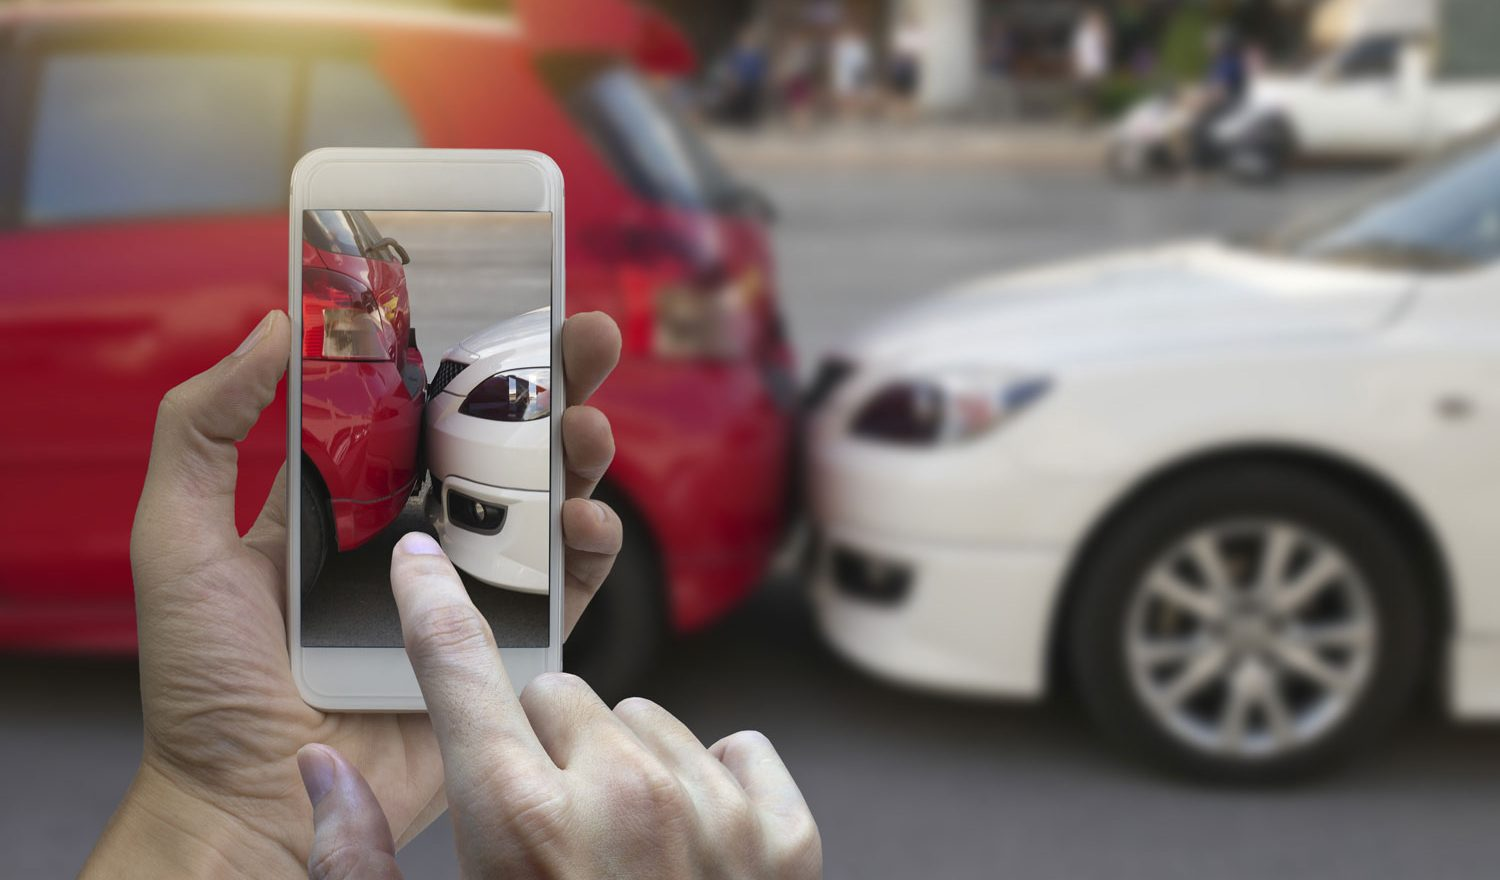 hands-holding-a-mobile-phone-and-taking-a-photo-of-a-car-accident